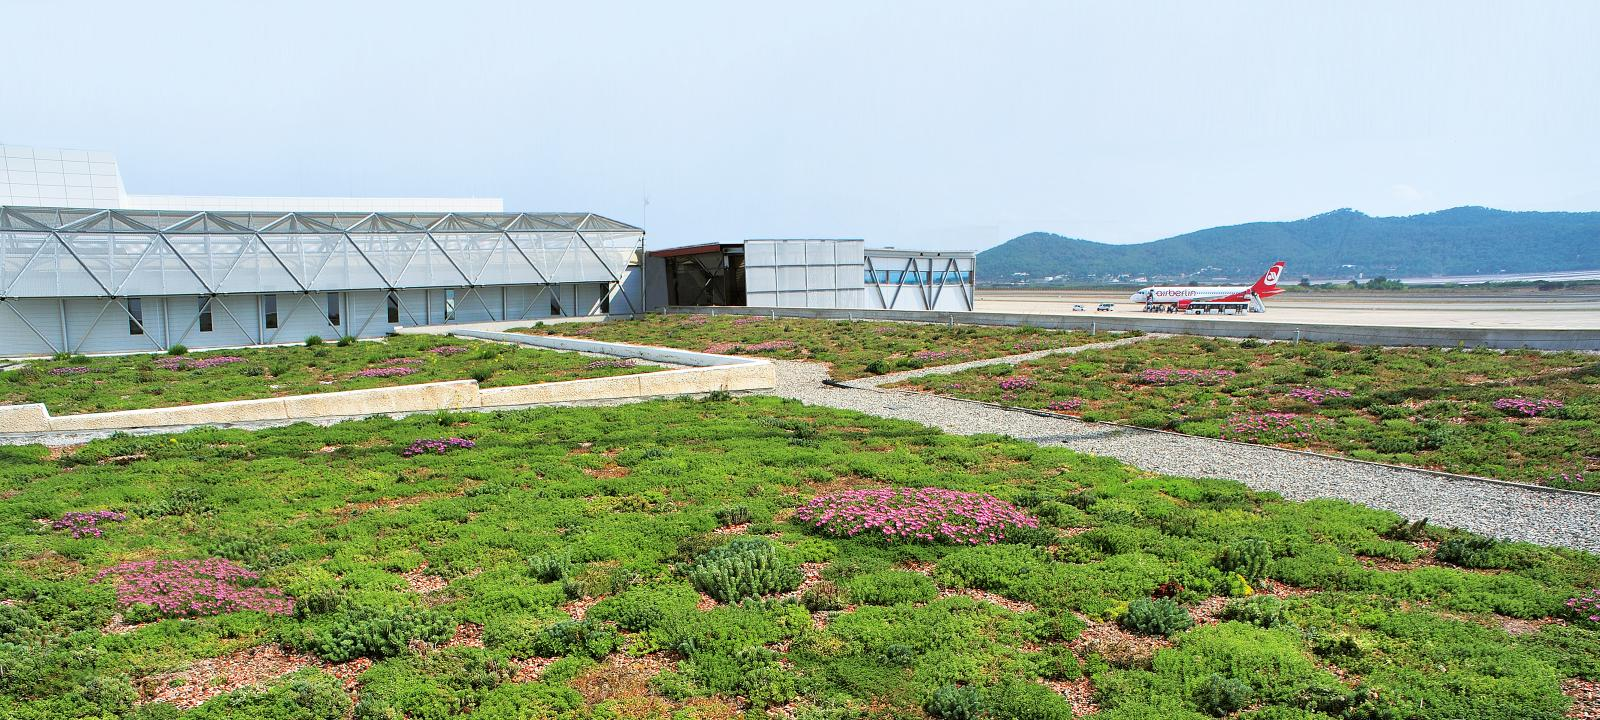 Flowering extensive green roof at the airport